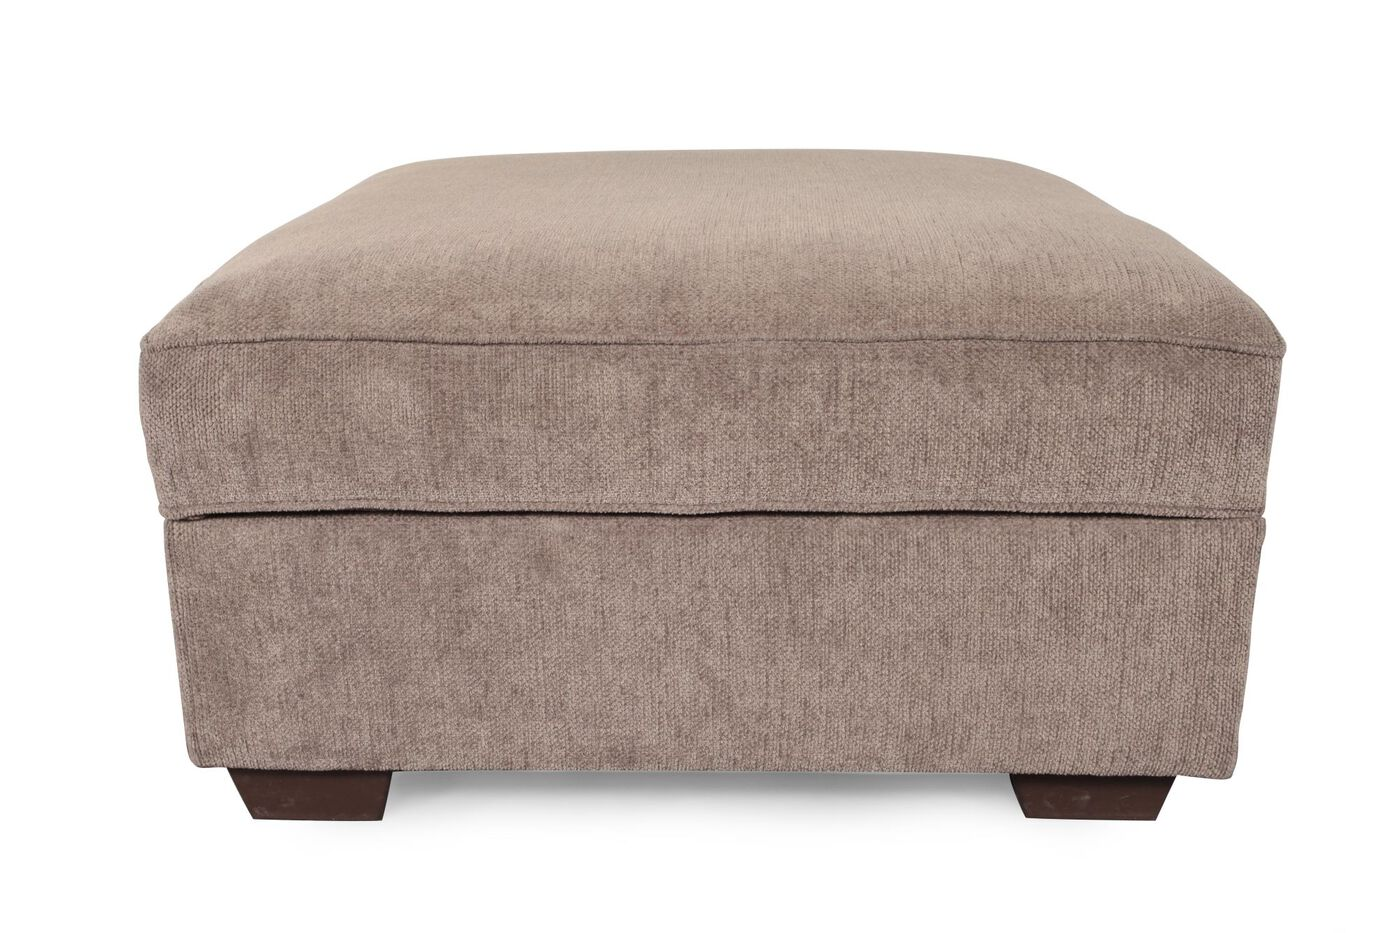 contemporary 38 storage ottoman in brown mathis brothers furniture. Black Bedroom Furniture Sets. Home Design Ideas